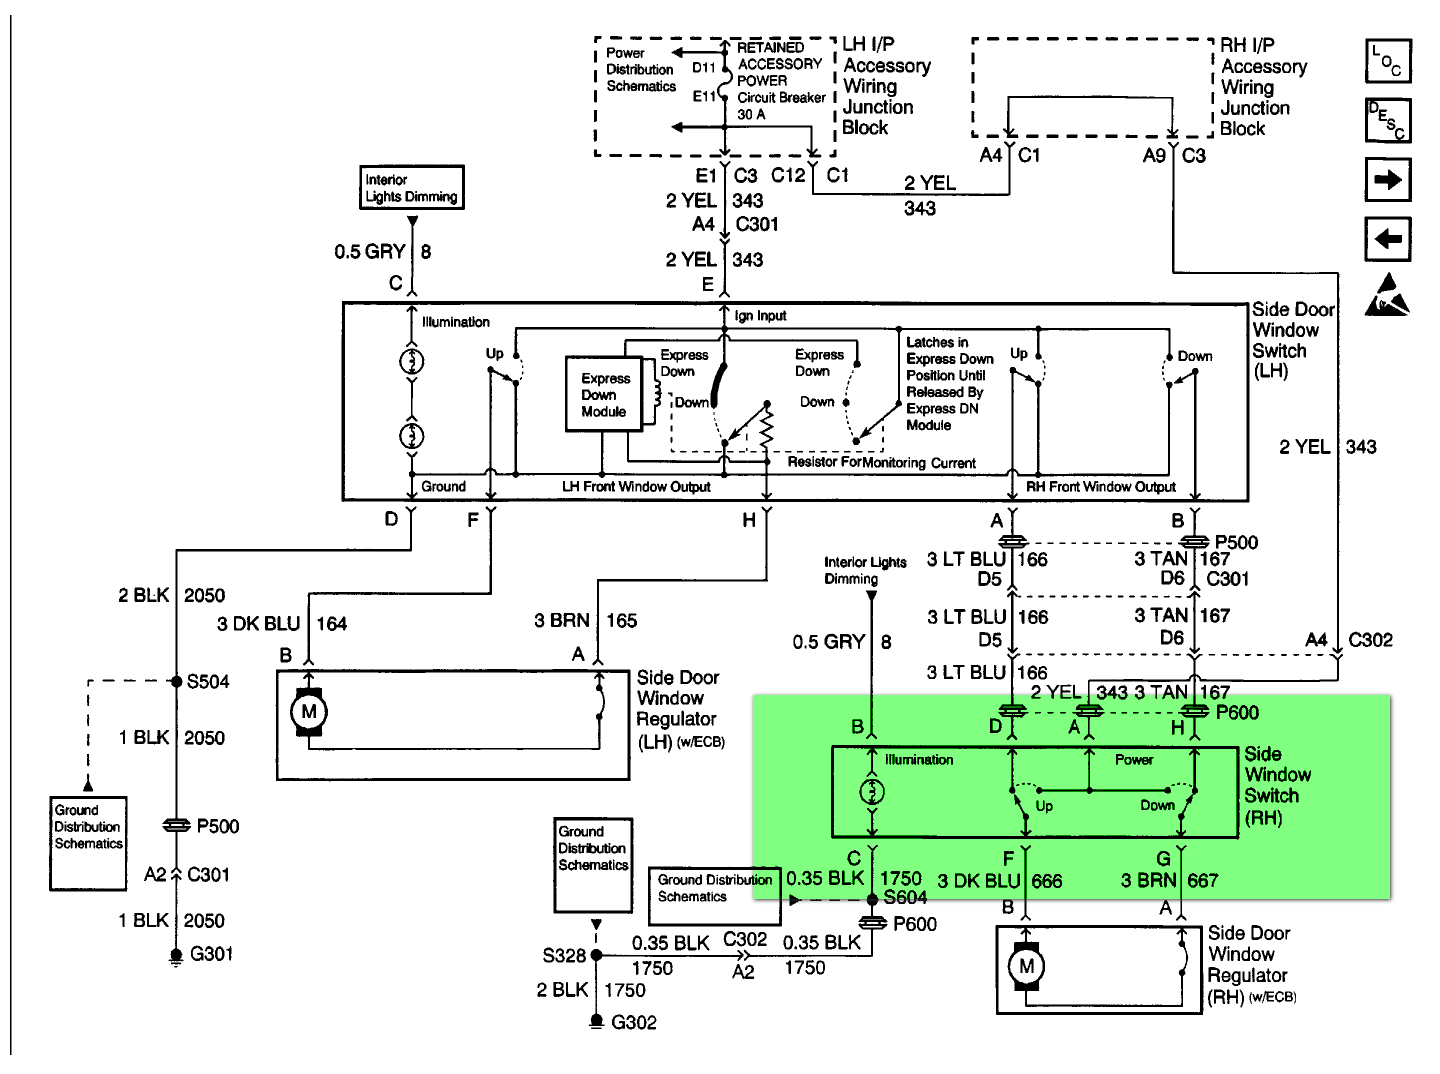 1989 Chevy C1500 Wiring Diagram from i.pinimg.com